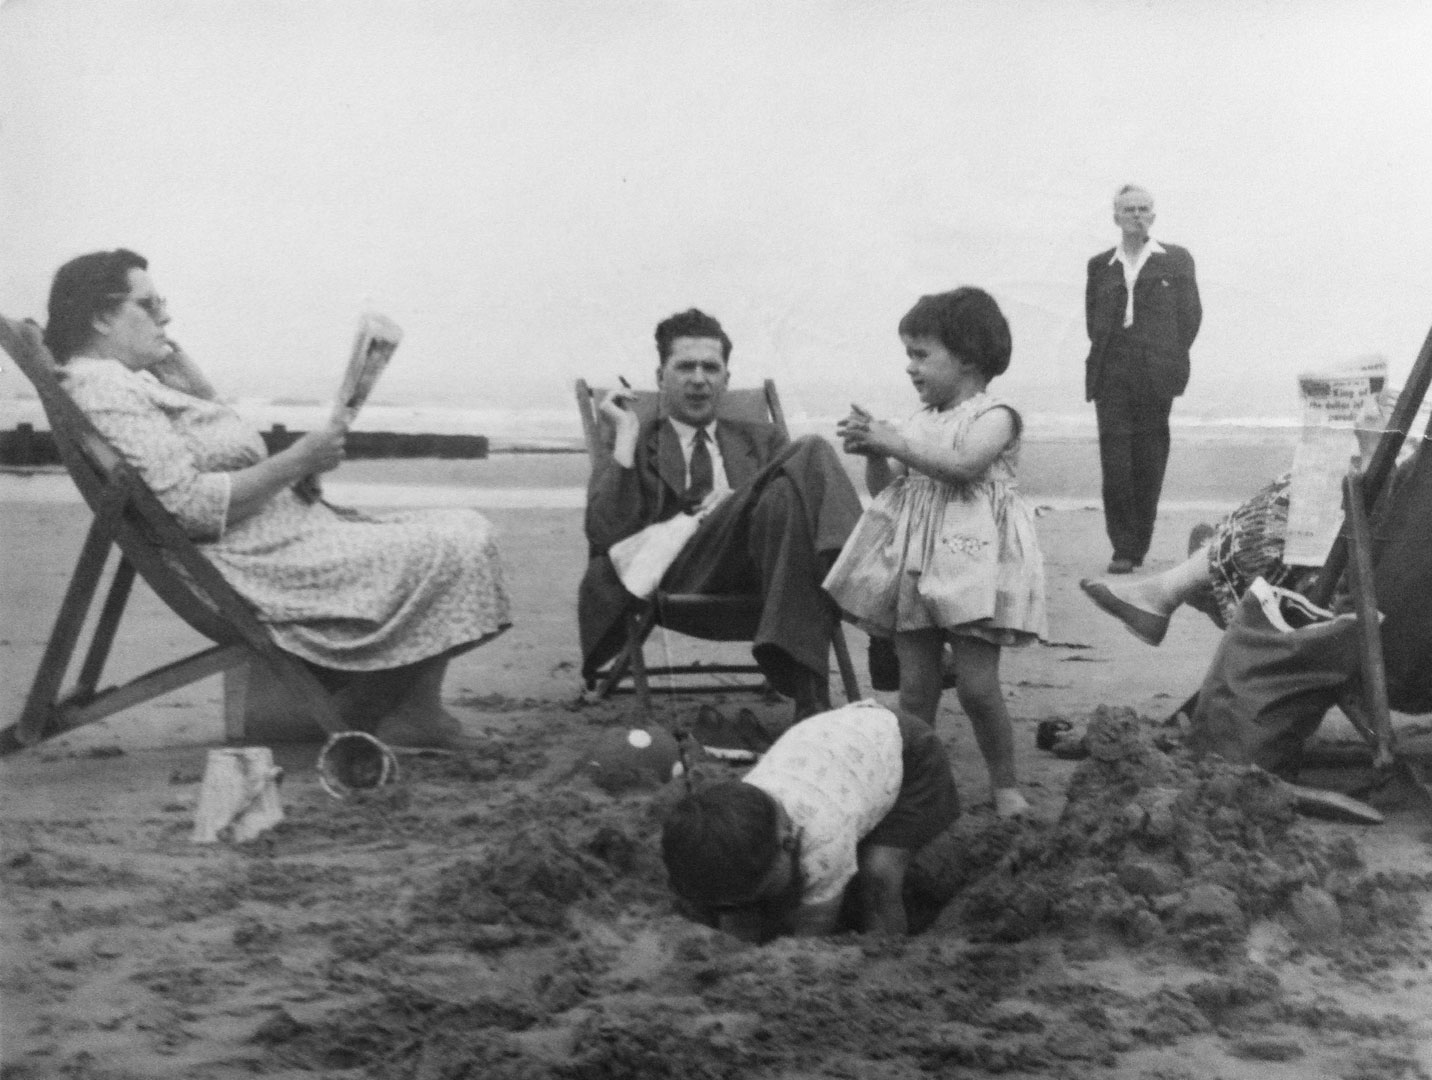 An old black & white photograph from our own family album. Family members on the beach. Woman in deckchair reading paper on right of frame. Man in deckchair who appears to be smoking a cigarette (centre) with young girl to the right of him standing. A young boy in front is digging a hole whilst to the right we can see a man standing in the background smoking a pipe and the edge of the back of another deckchair with a woman's legs poking out and another newspaper in her hands. The sea can be seen in the background.